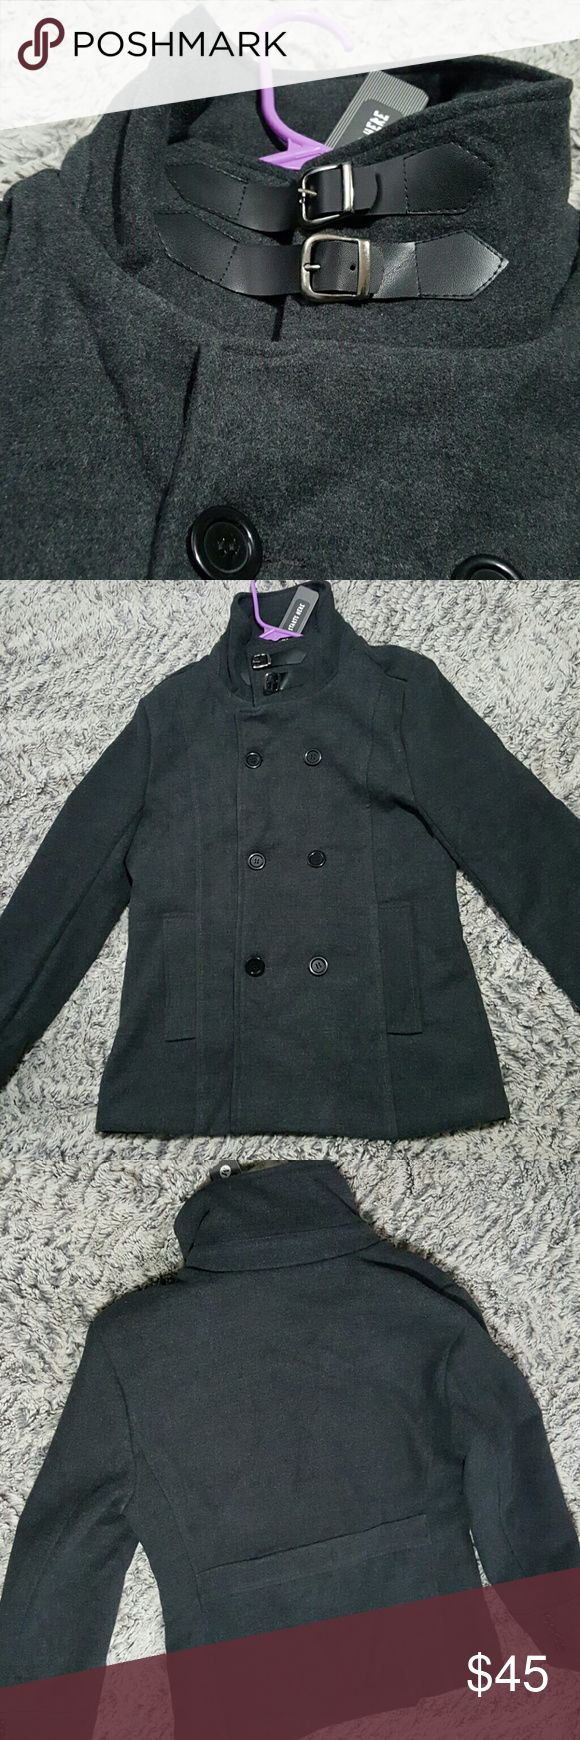 "NWT. Woolen Trench Coat For Men/women ""Slimming Trendy Turndown Collar Double Breasted Long Sleeve Woolen Trench Coat For Men"". They said for men, so i bought it as a gift and he said it was alittle feminine for him because its slimming. Its very cute, so i say it can be for men or women. If i could fit a M i would definitely wear it! zyfg free  Jackets & Coats Trench Coats"